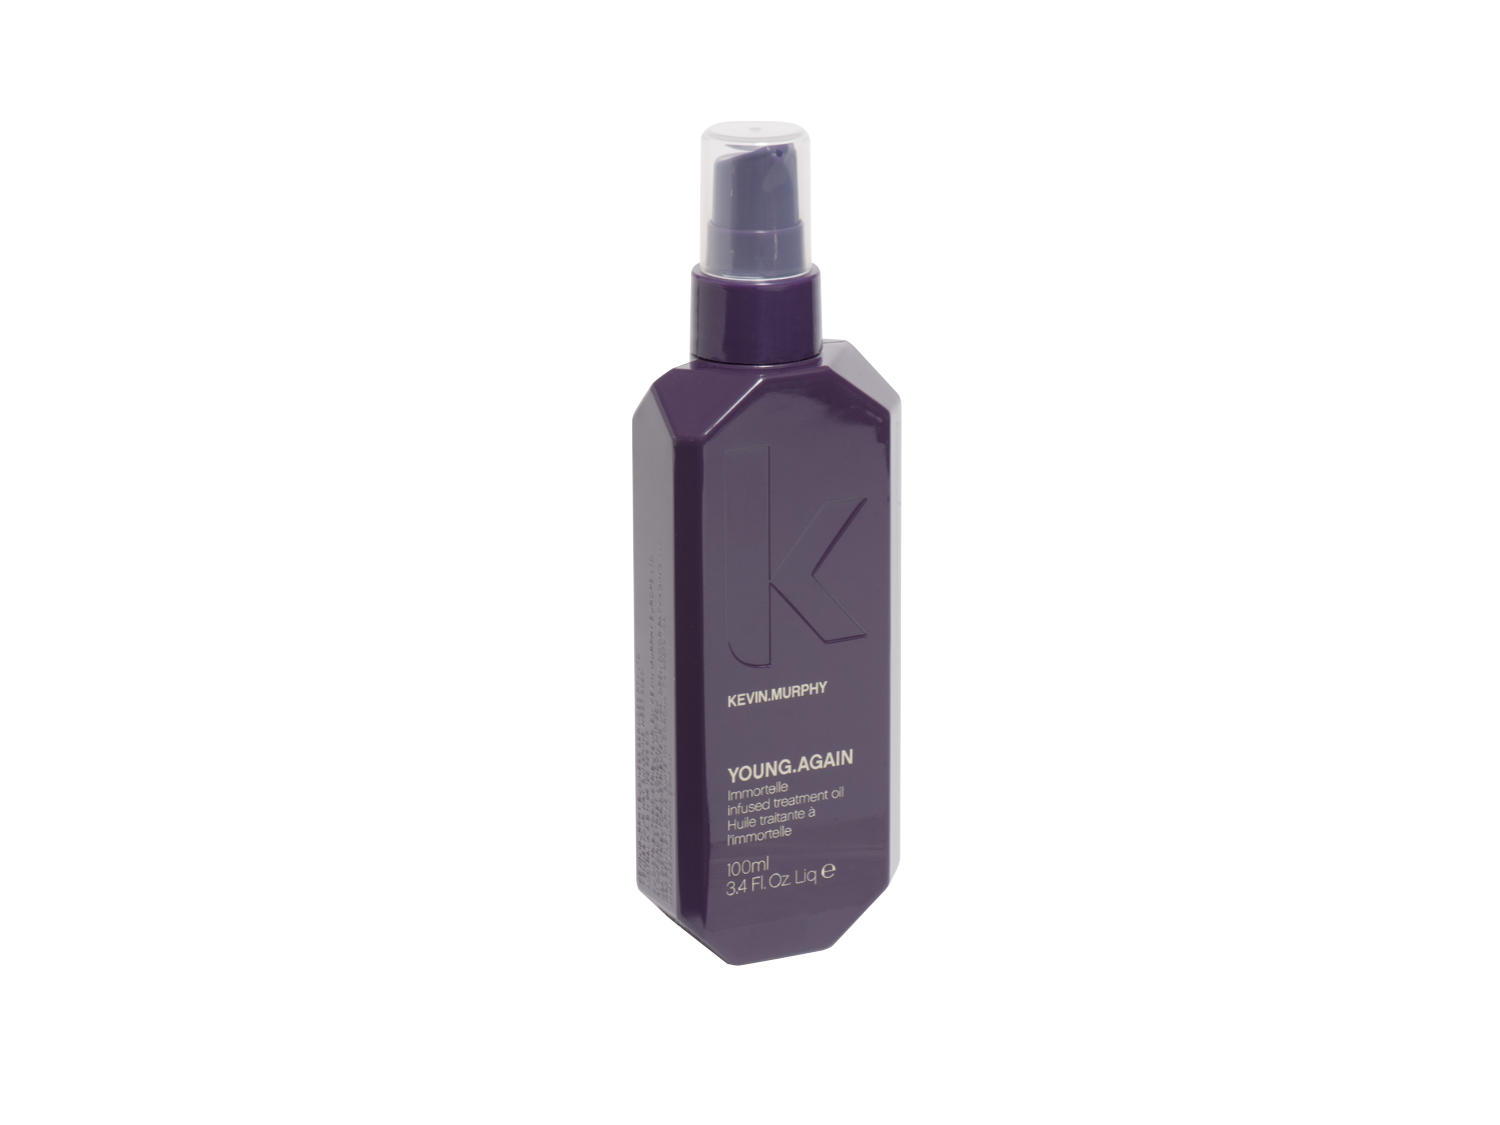 Arma Beauty - Kevin Murphy - YOUNG.AGAIN